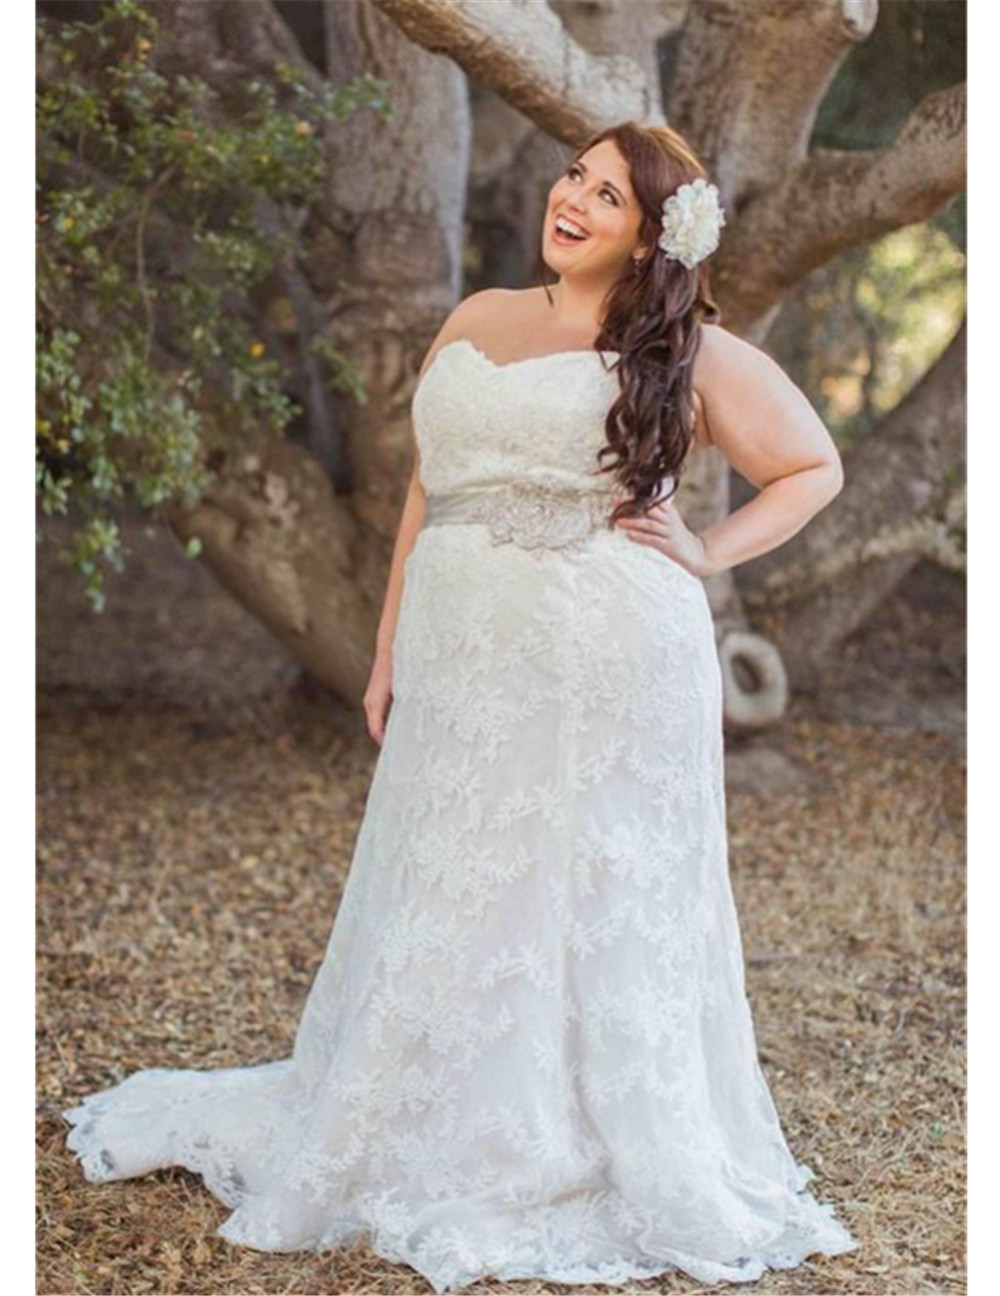 New Strapless Lace White Ivory Plus Size Wedding Dress With Sash